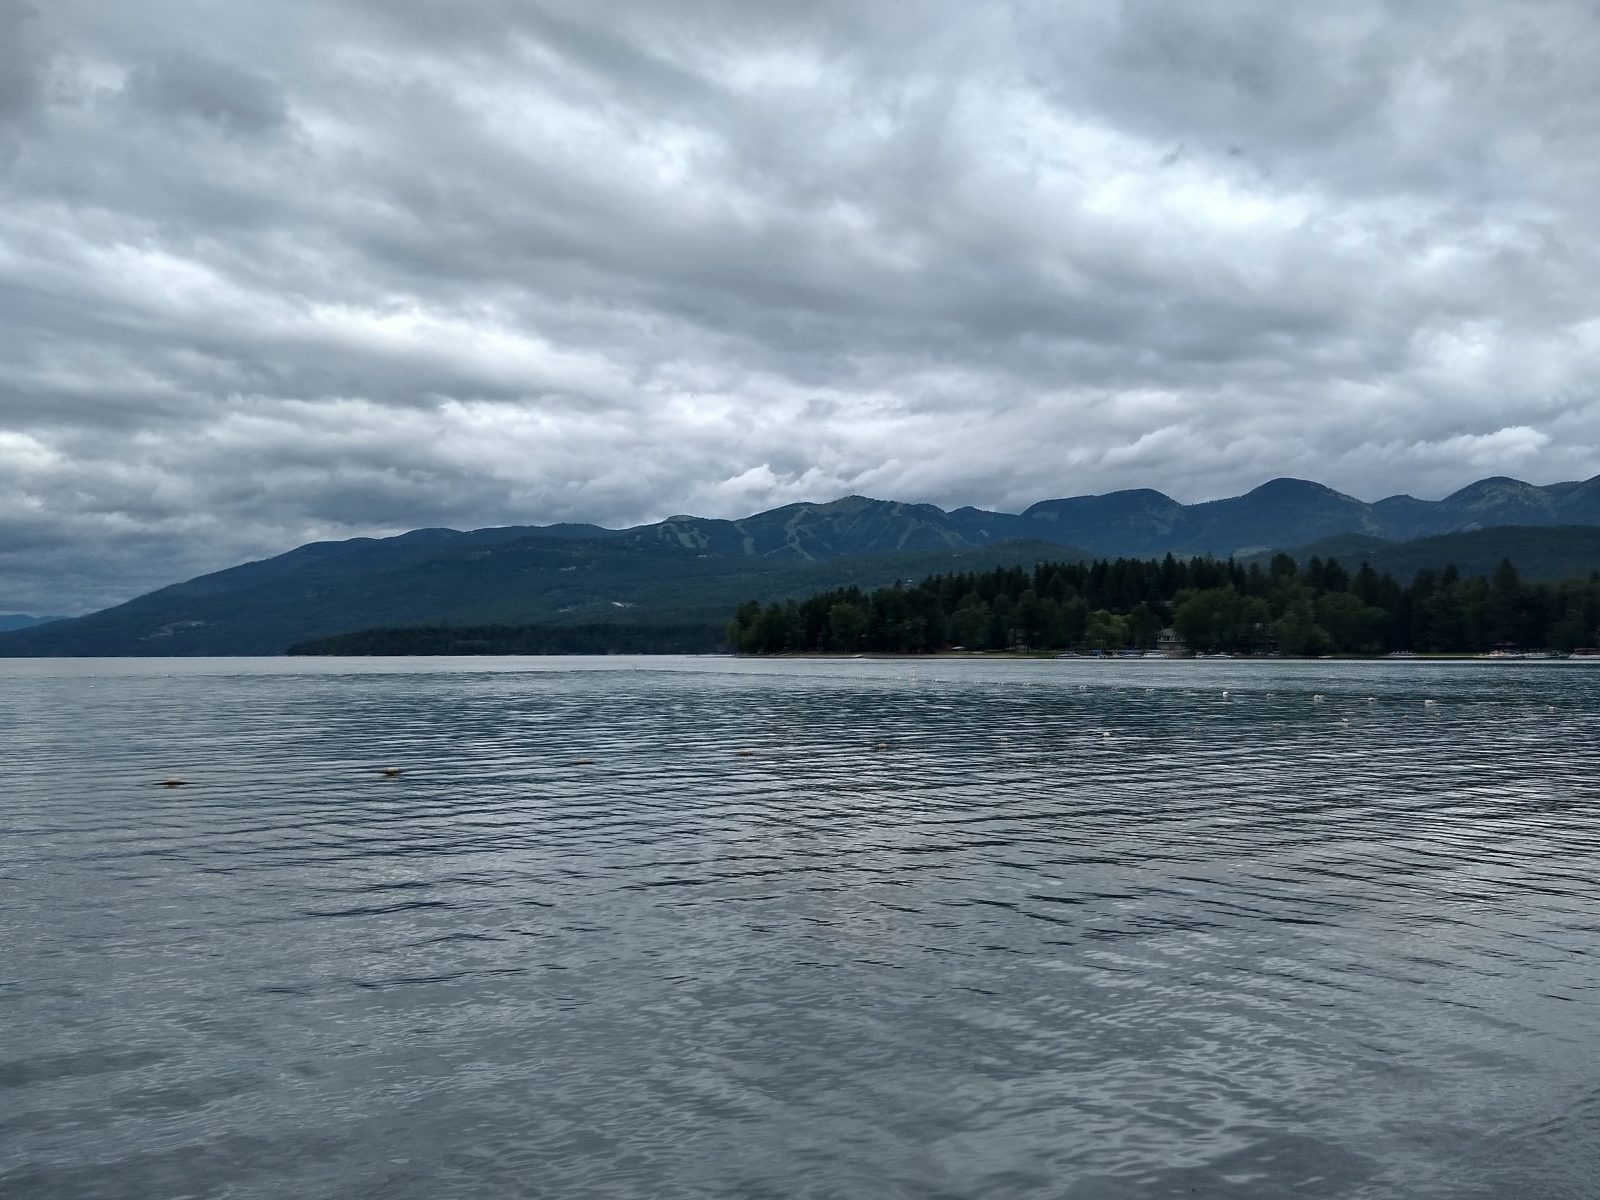 Whitefish Lake - July 8, 2020